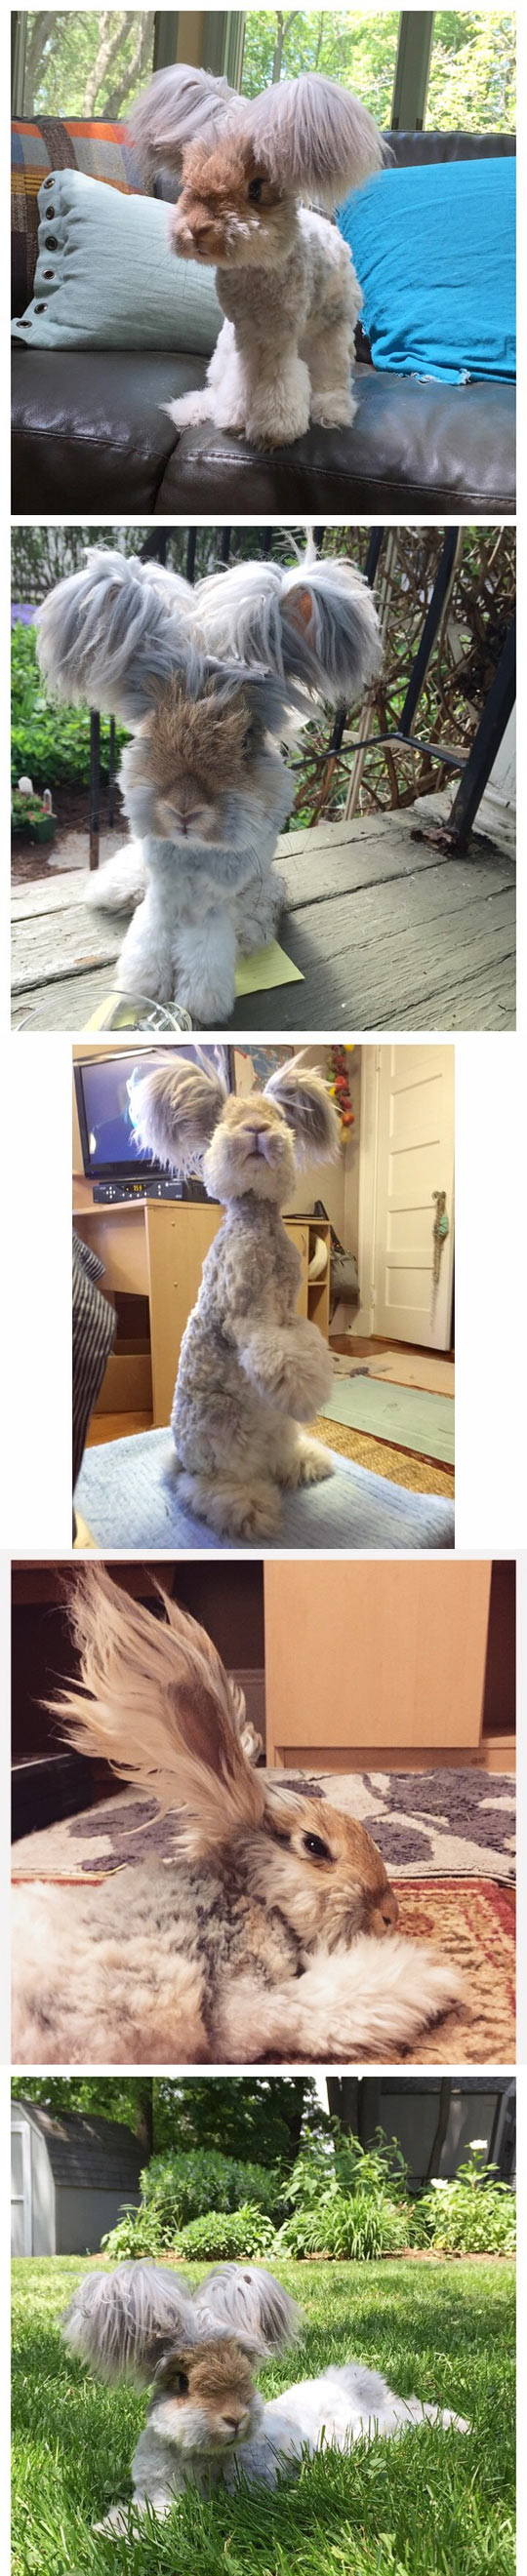 funny-bunny-hairs-style-ears-pet